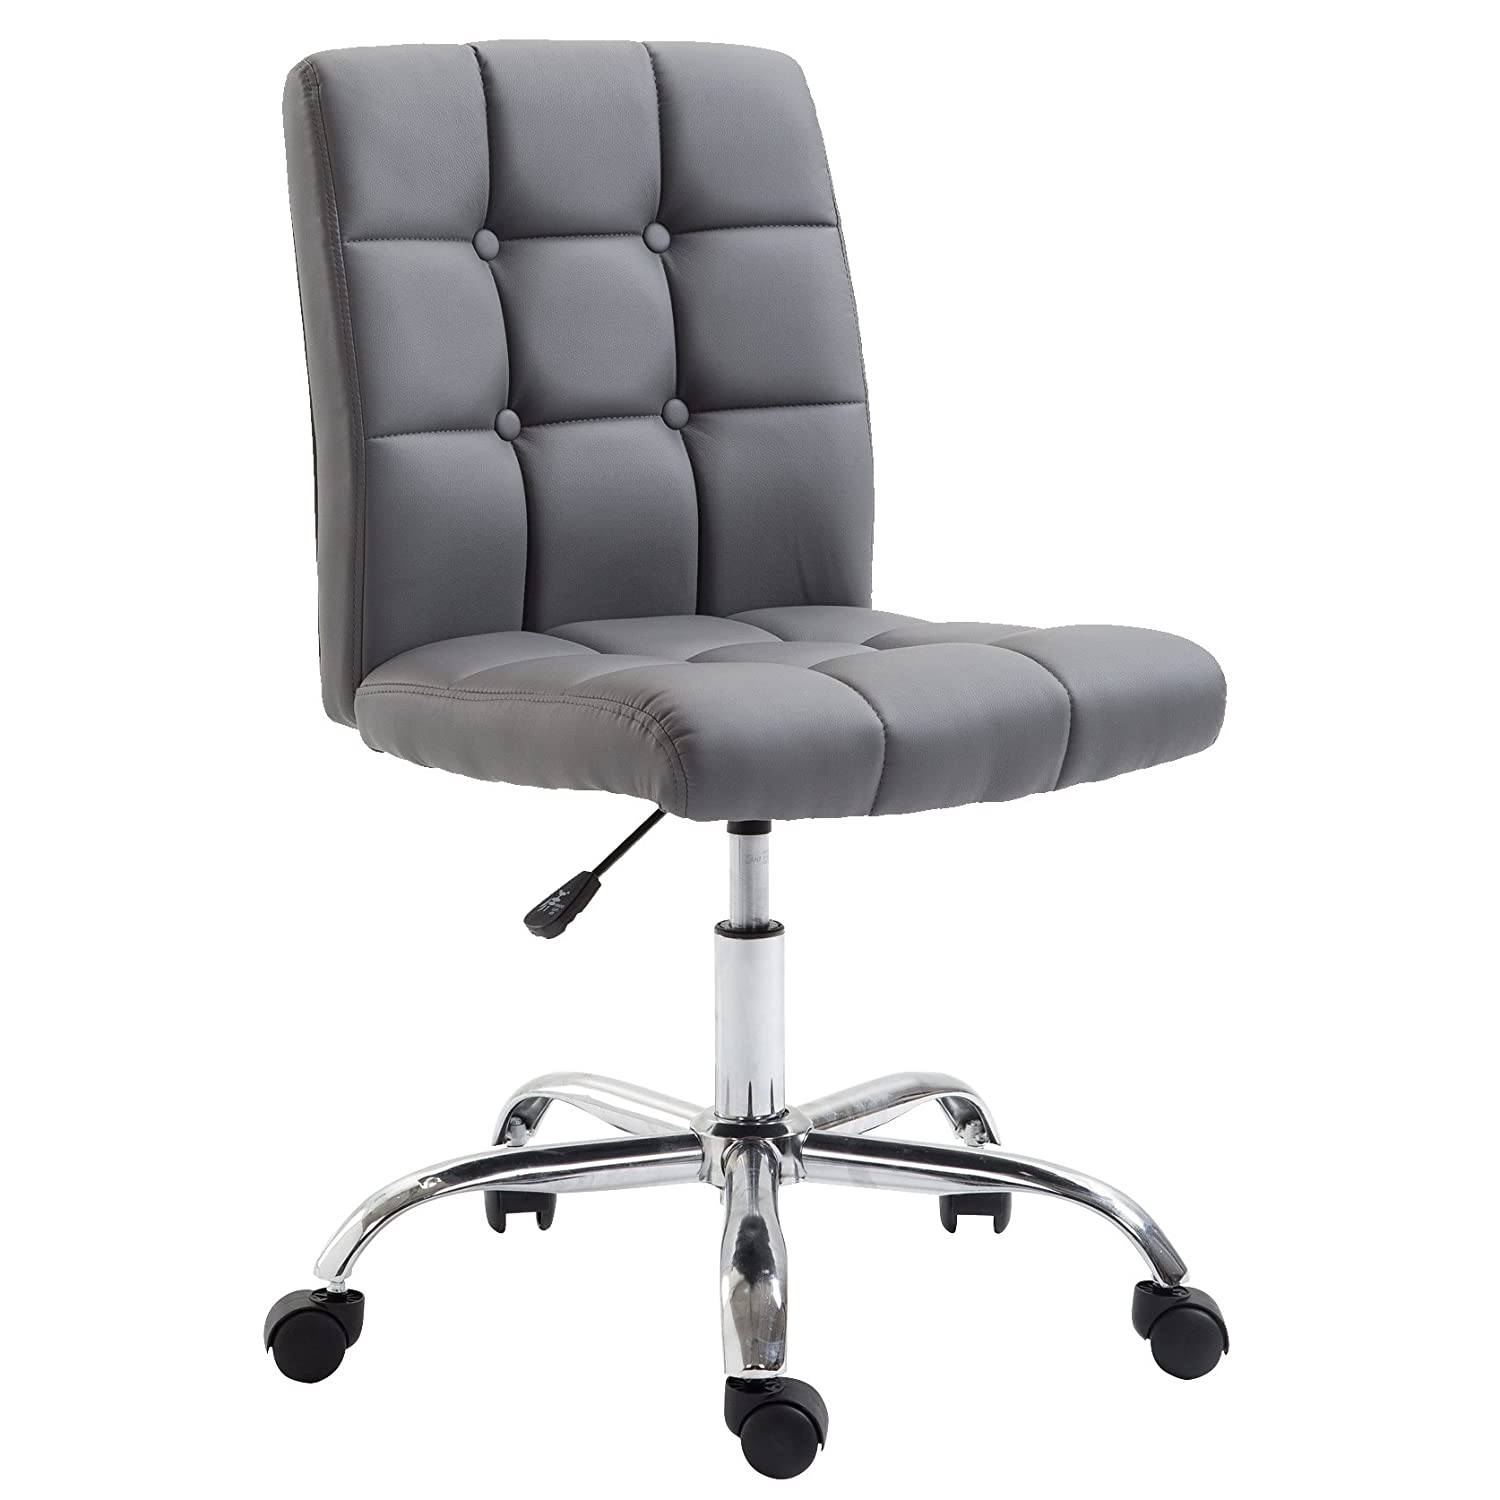 POLY & BARKAria Task Chair in Vegan Leather, Grey